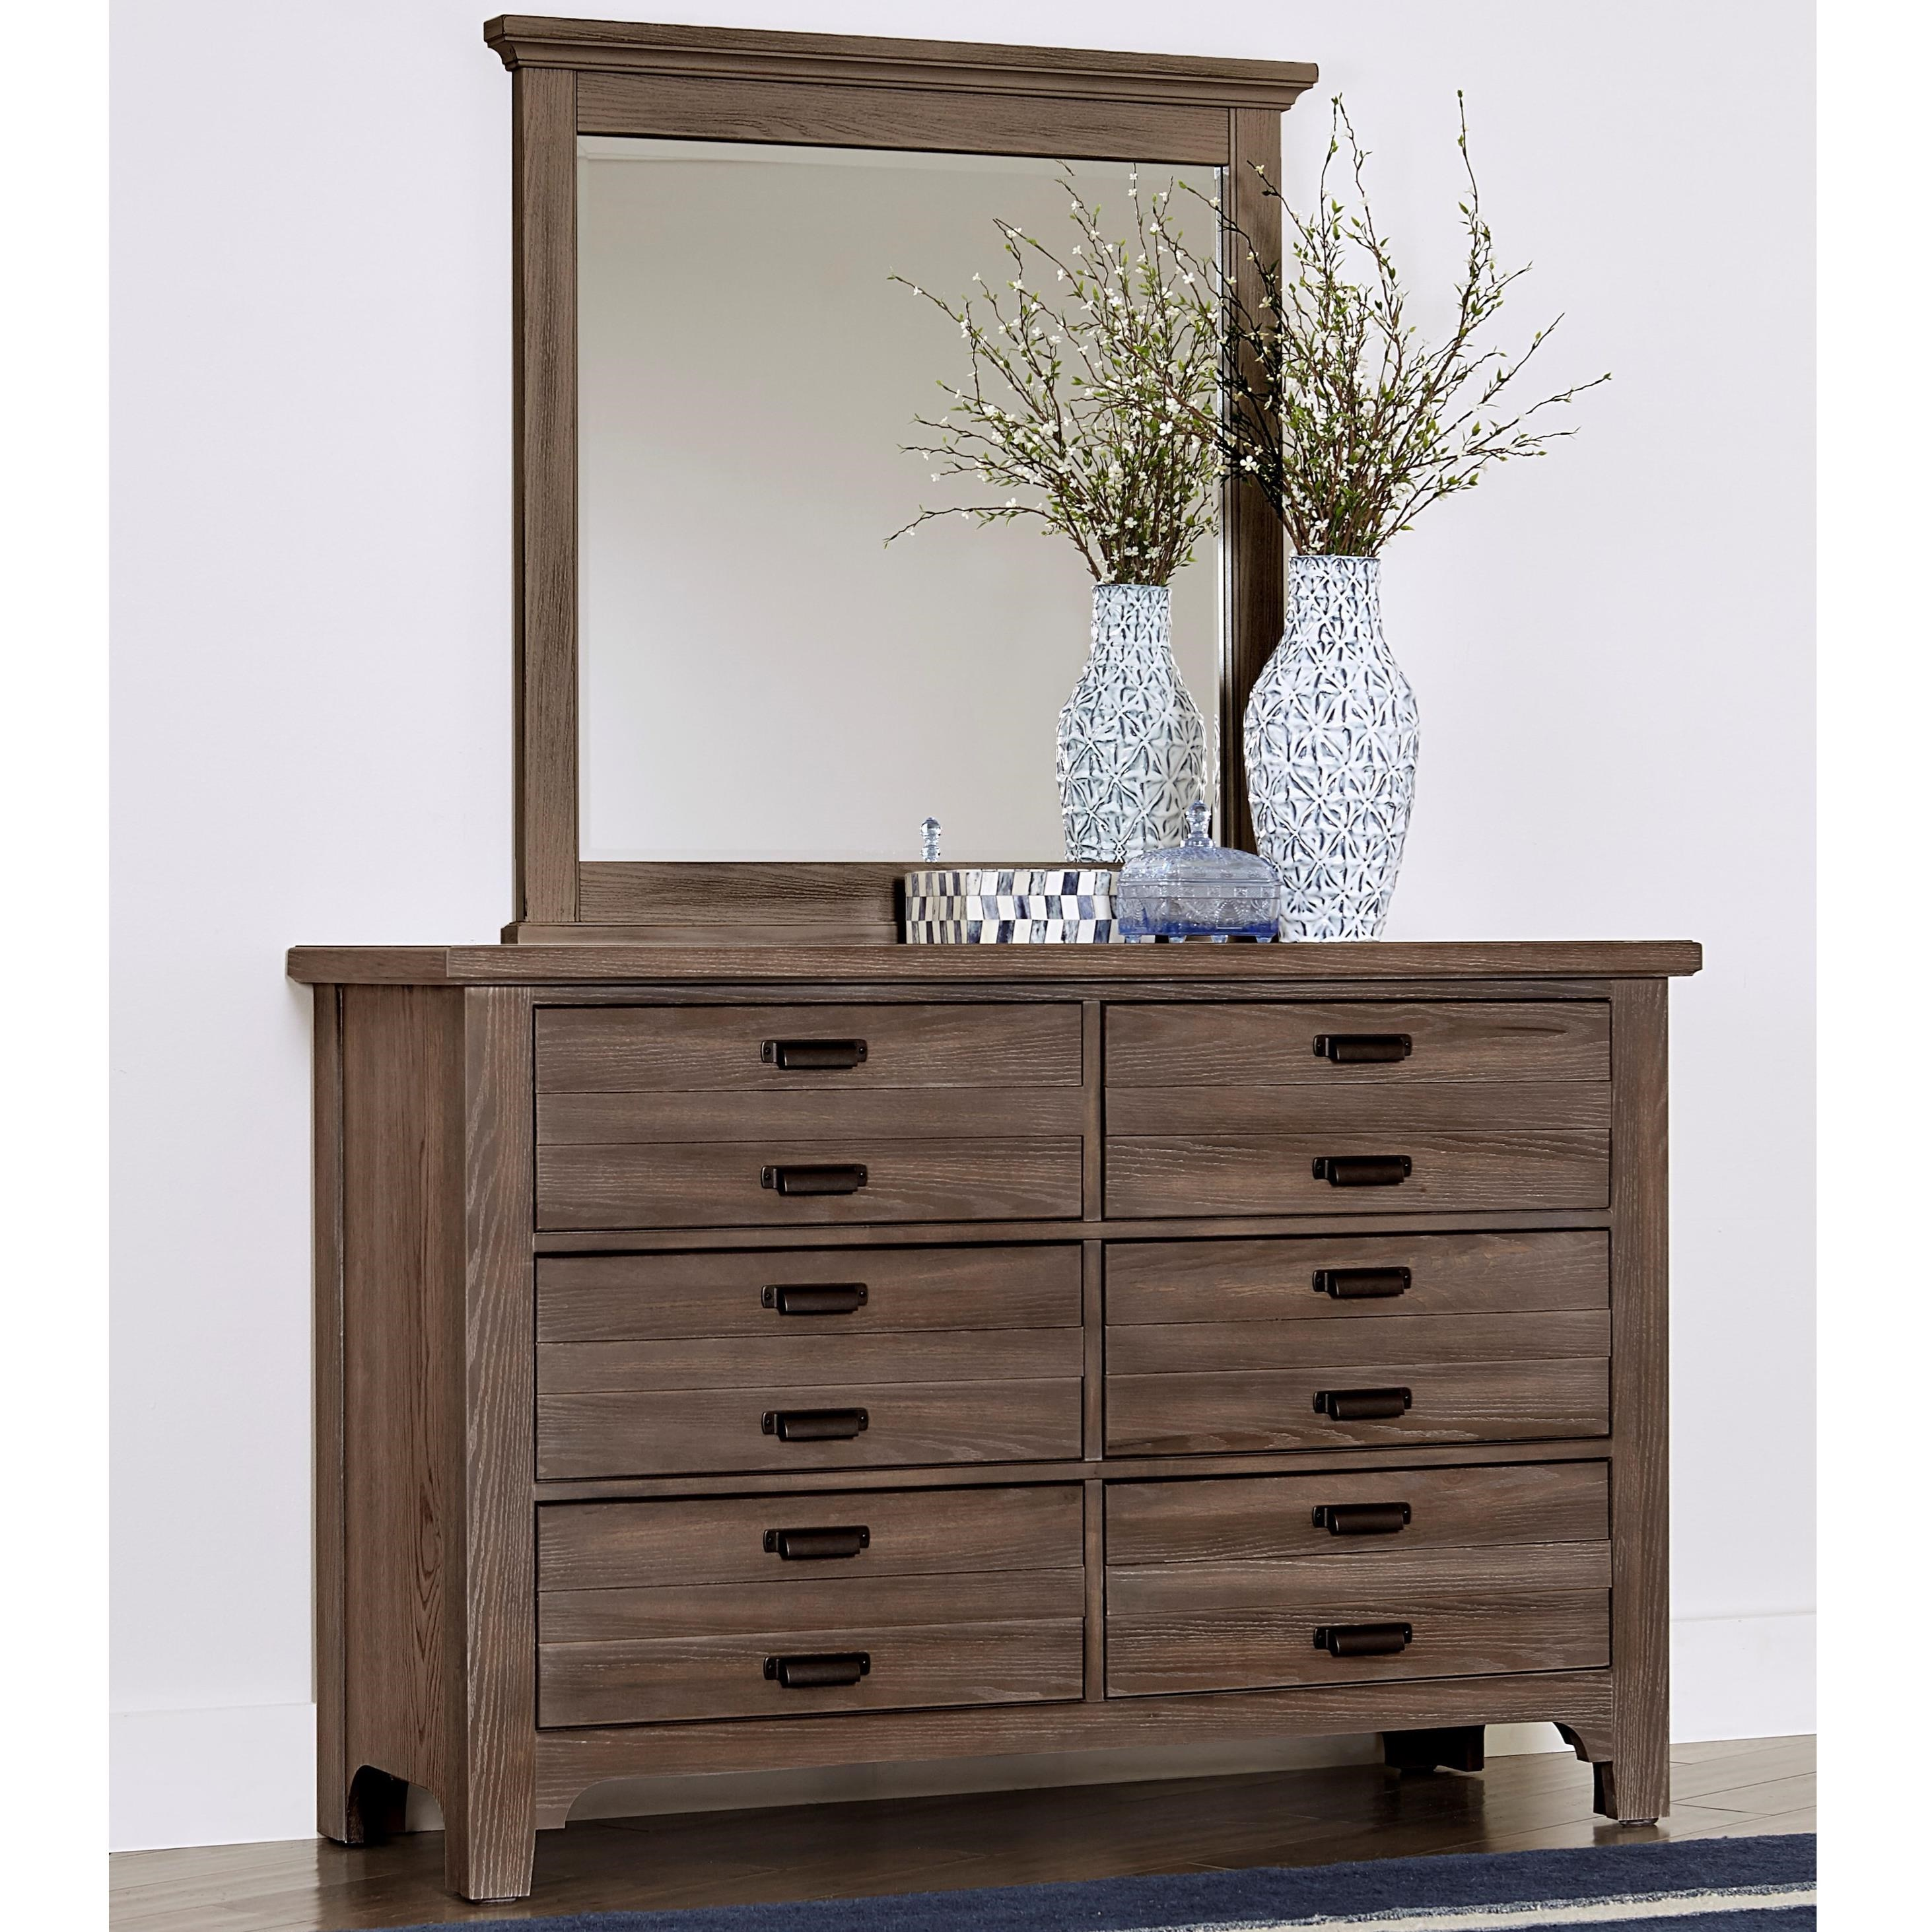 Bungalow Double Dresser and Landscape Mirror by Laurel Mercantile Co. at Johnny Janosik